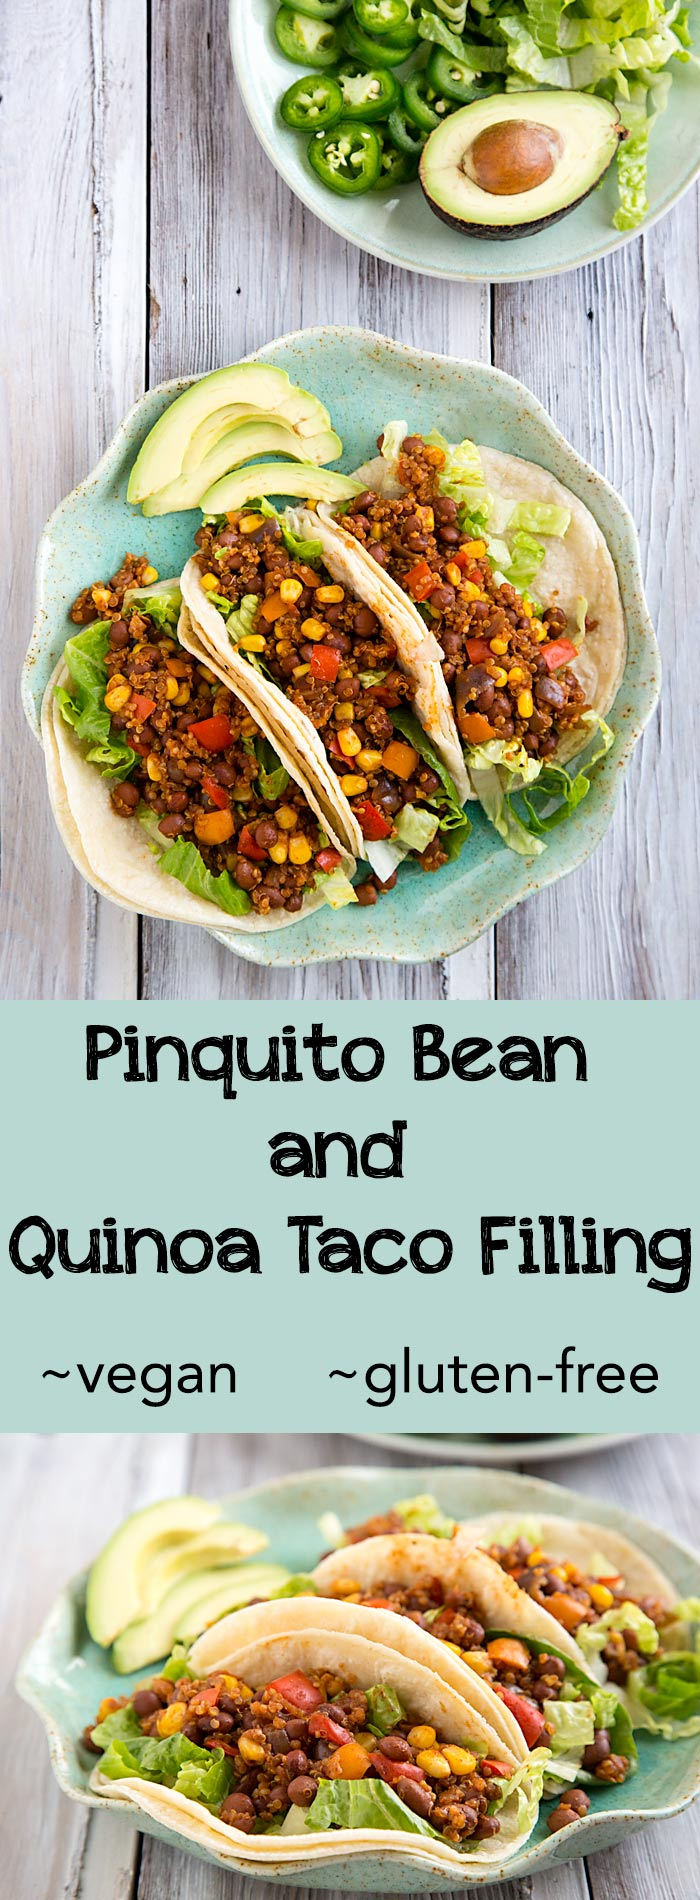 You won't miss the flavor or texture of meat with this vegan taco filling made with beans and quinoa. Gluten-free and fat-free too! #vegan #tomatofree #wfpb #1point